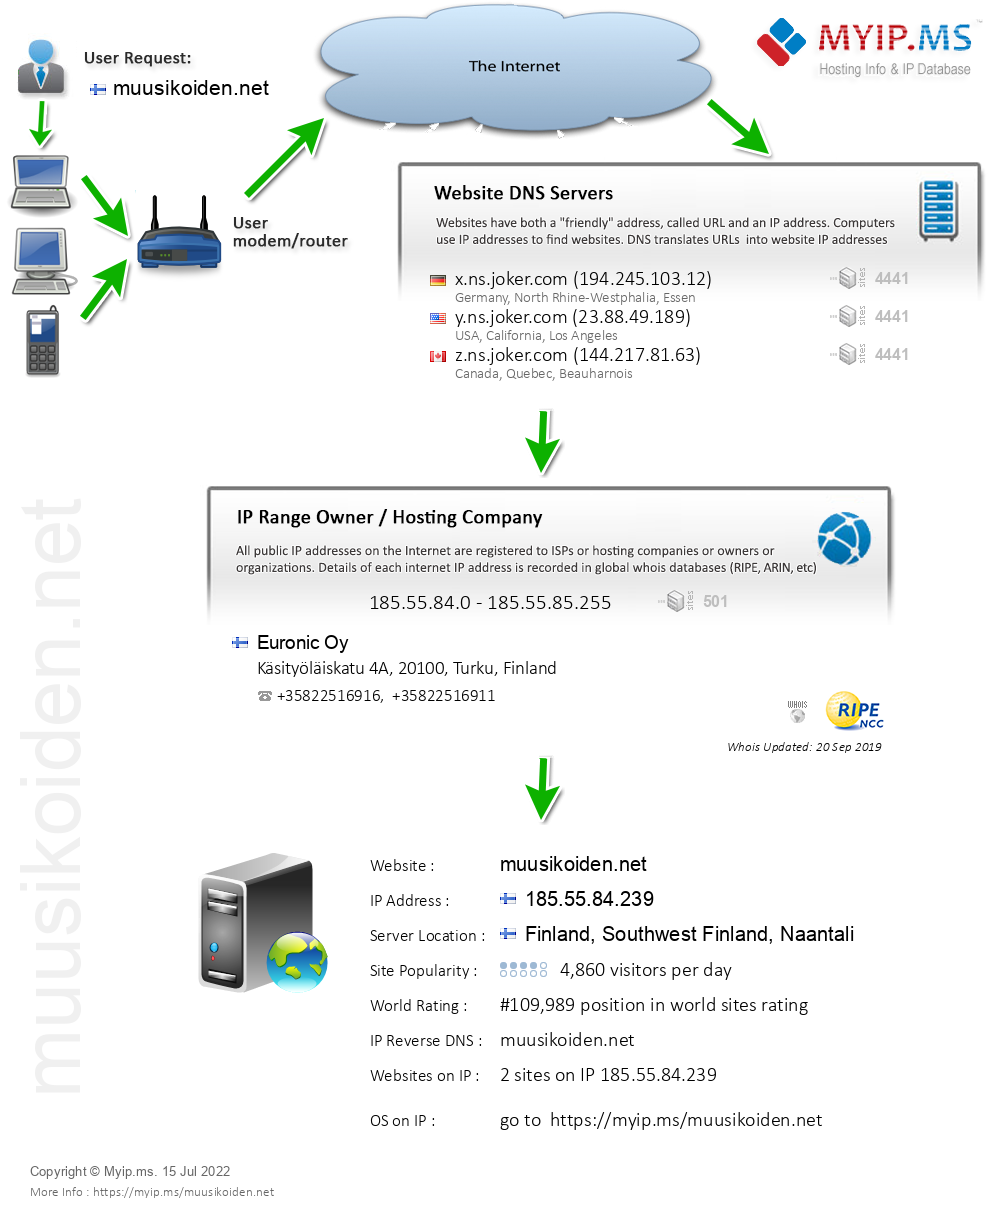 Muusikoiden.net - Website Hosting Visual IP Diagram